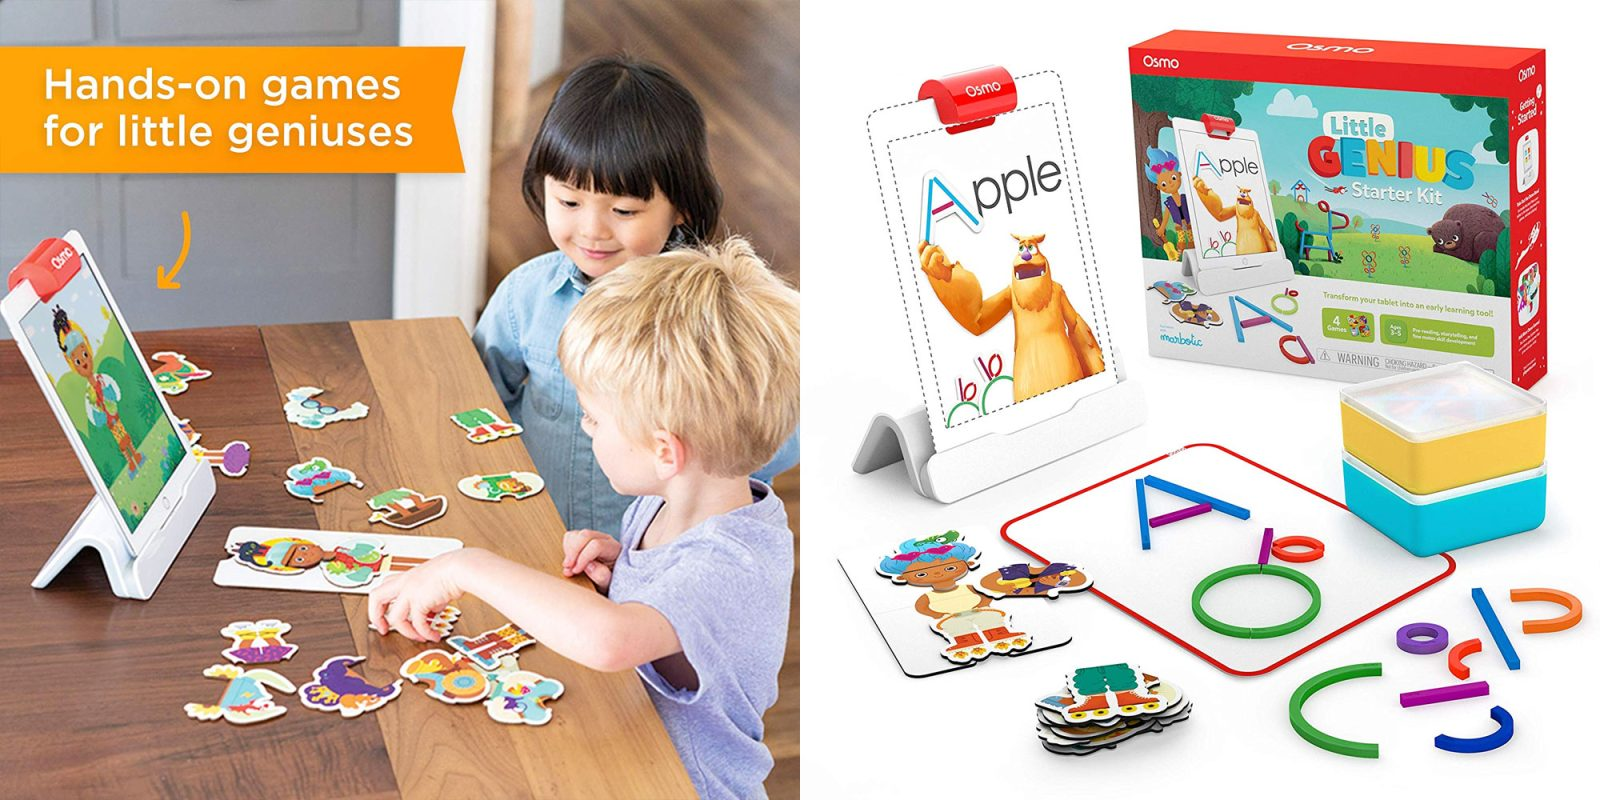 Osmo's latest iPad-based learning tool is aimed at preschoolers